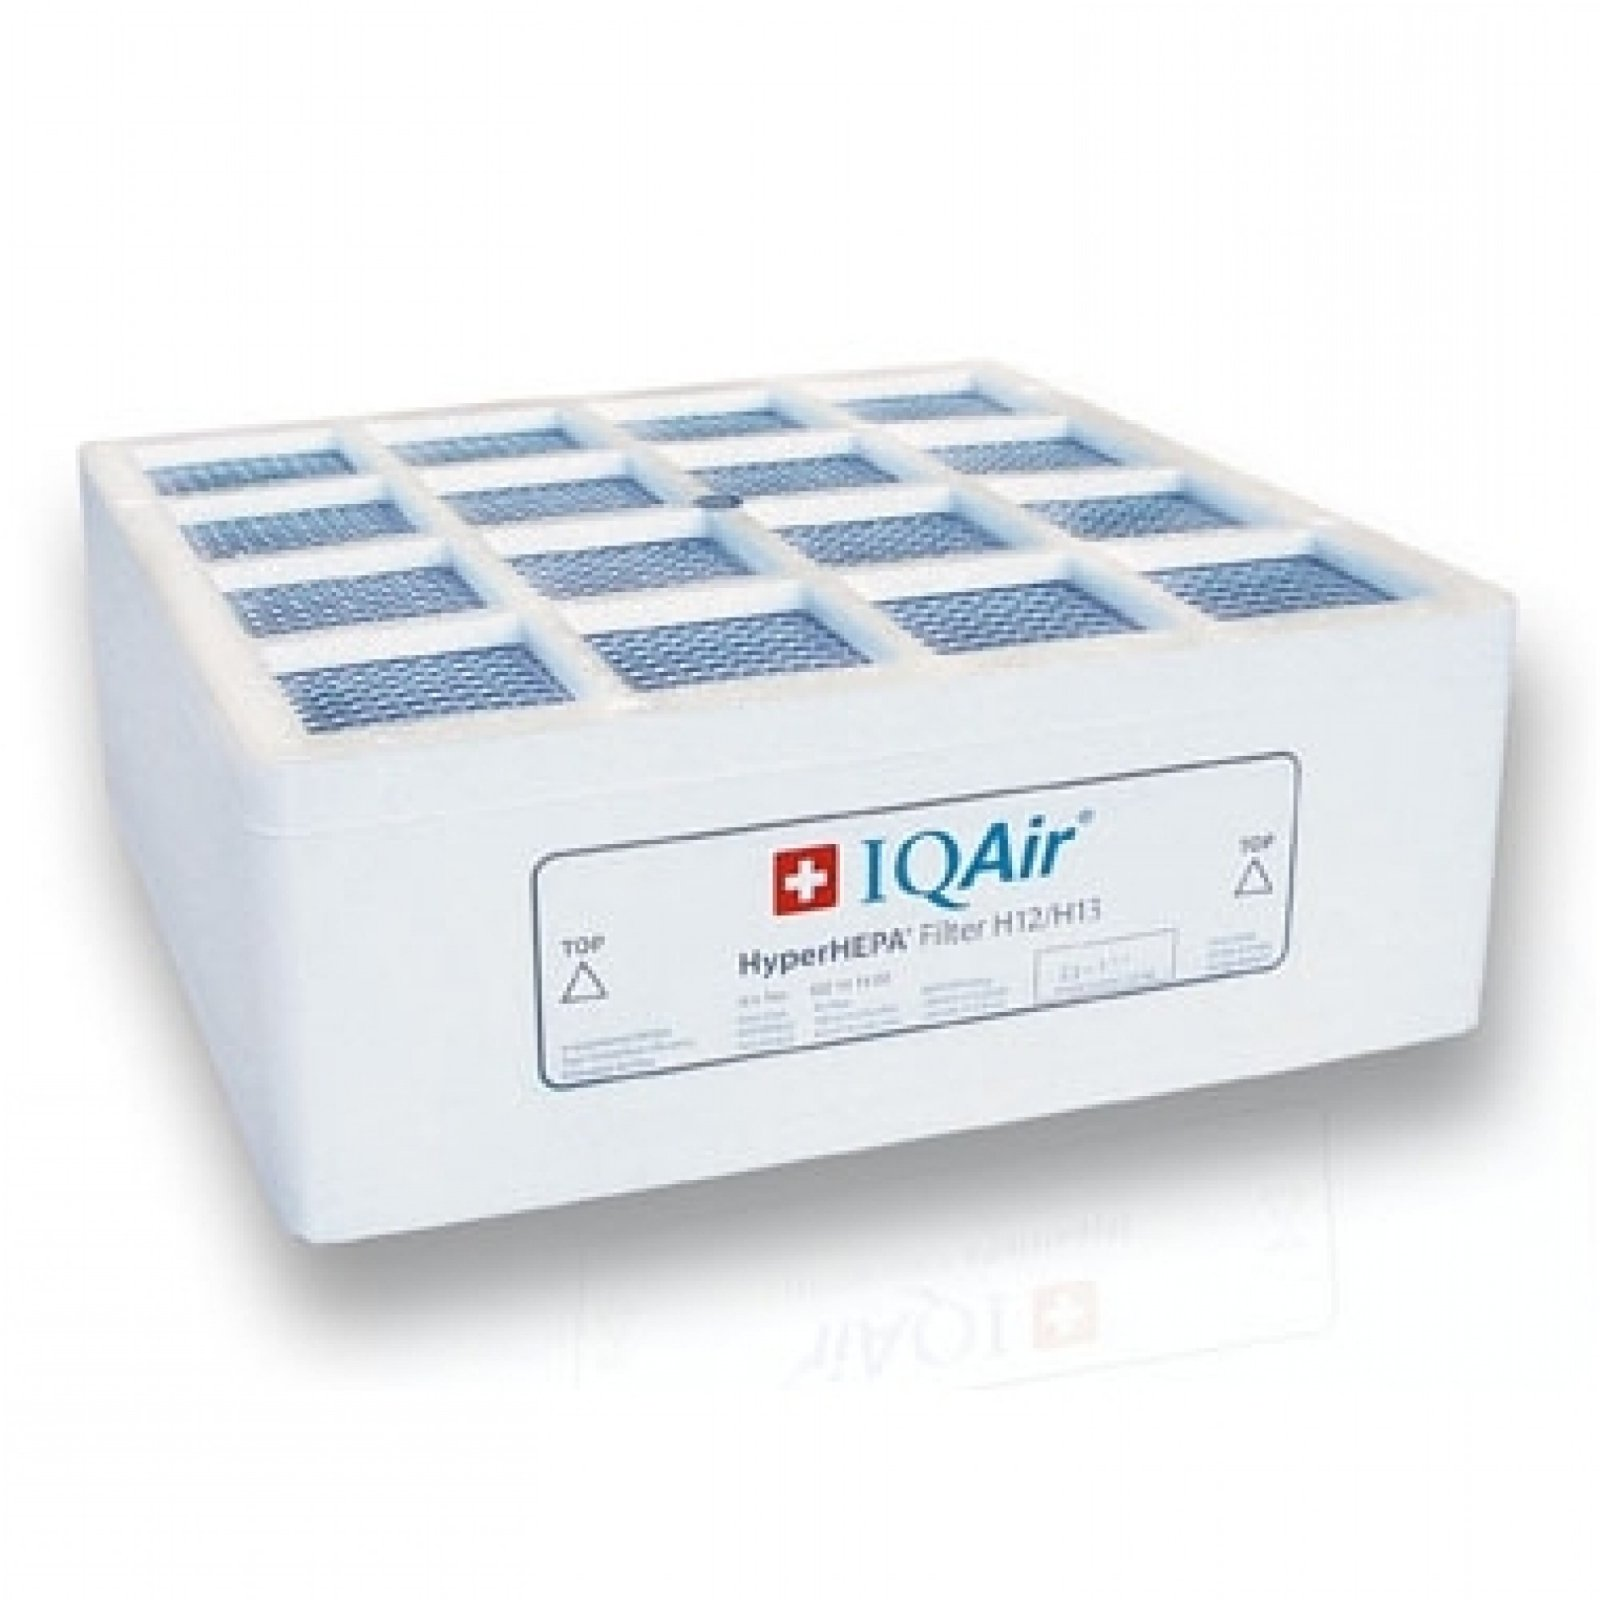 IQAir HyperHEPA Filter for all IQAir Healthpro's